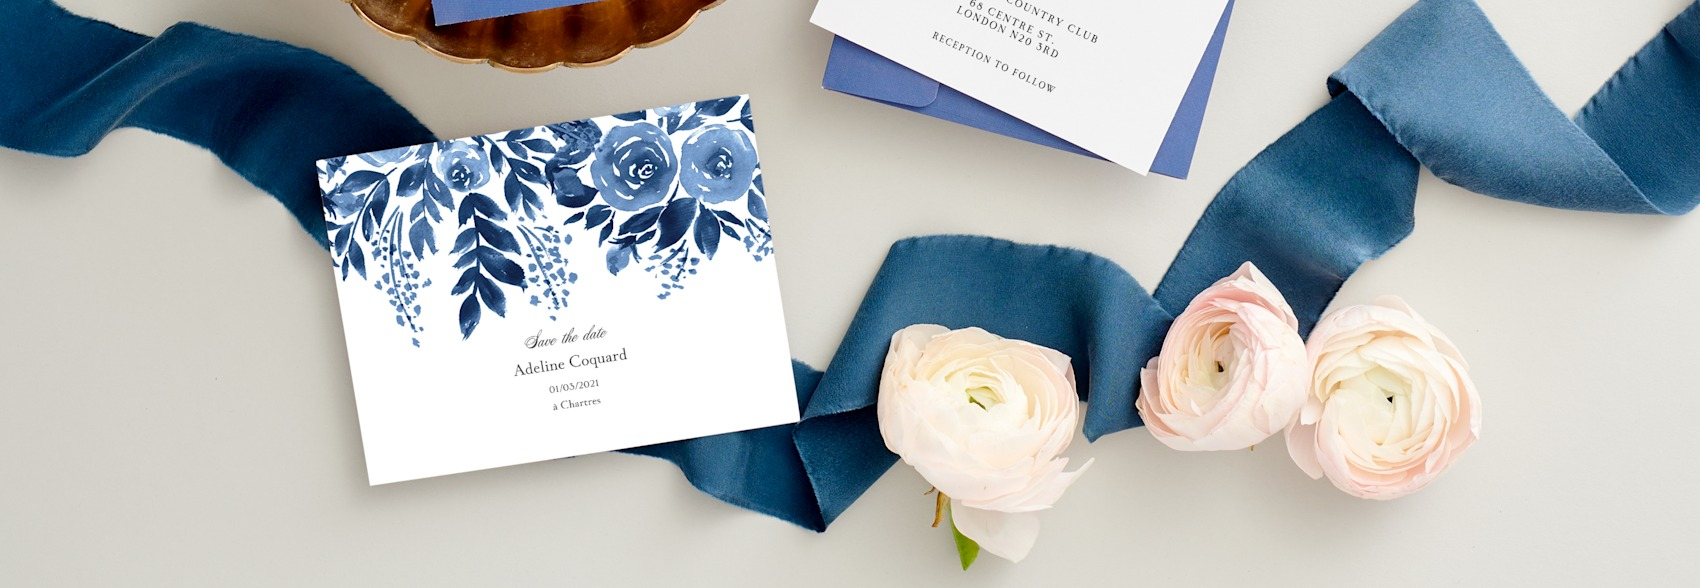 save the date cards with blue and white flowers